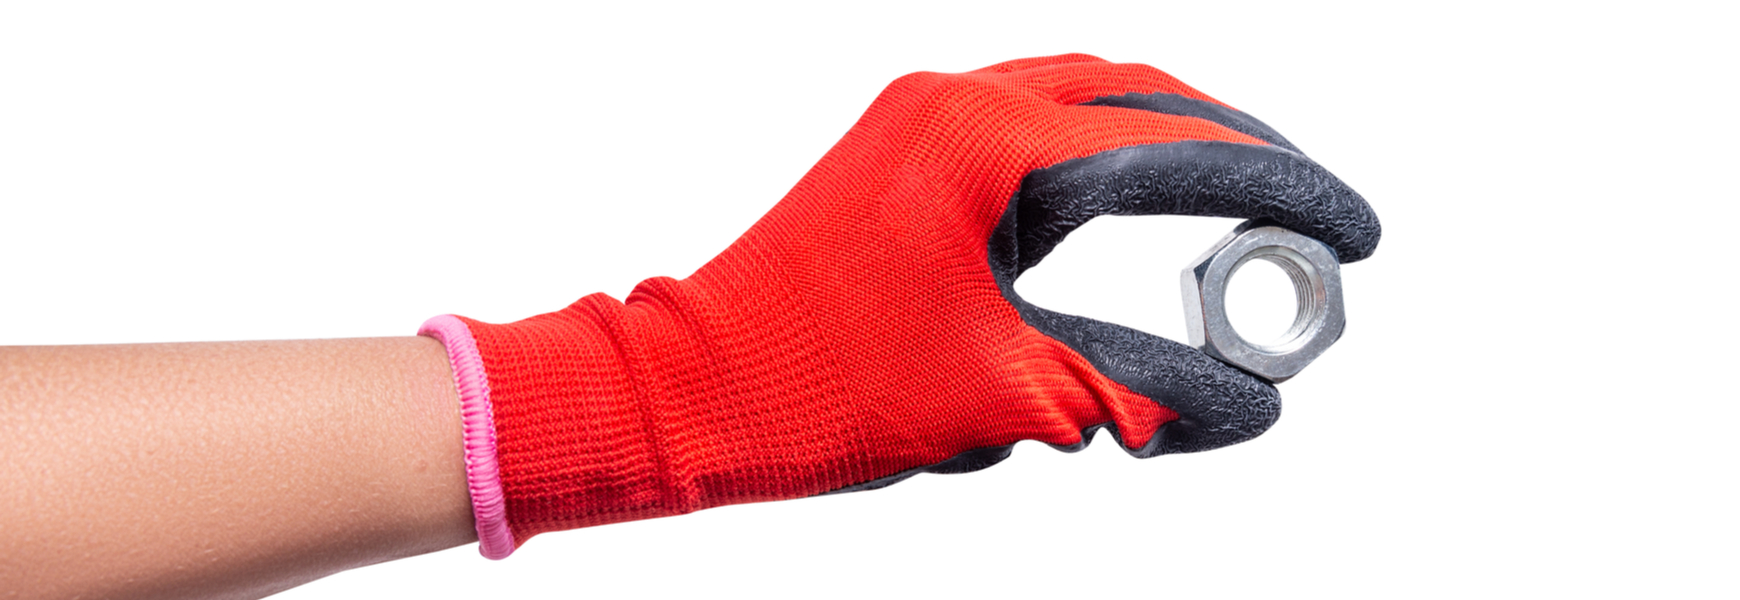 Worker with rubbberized glove holding a nut screw